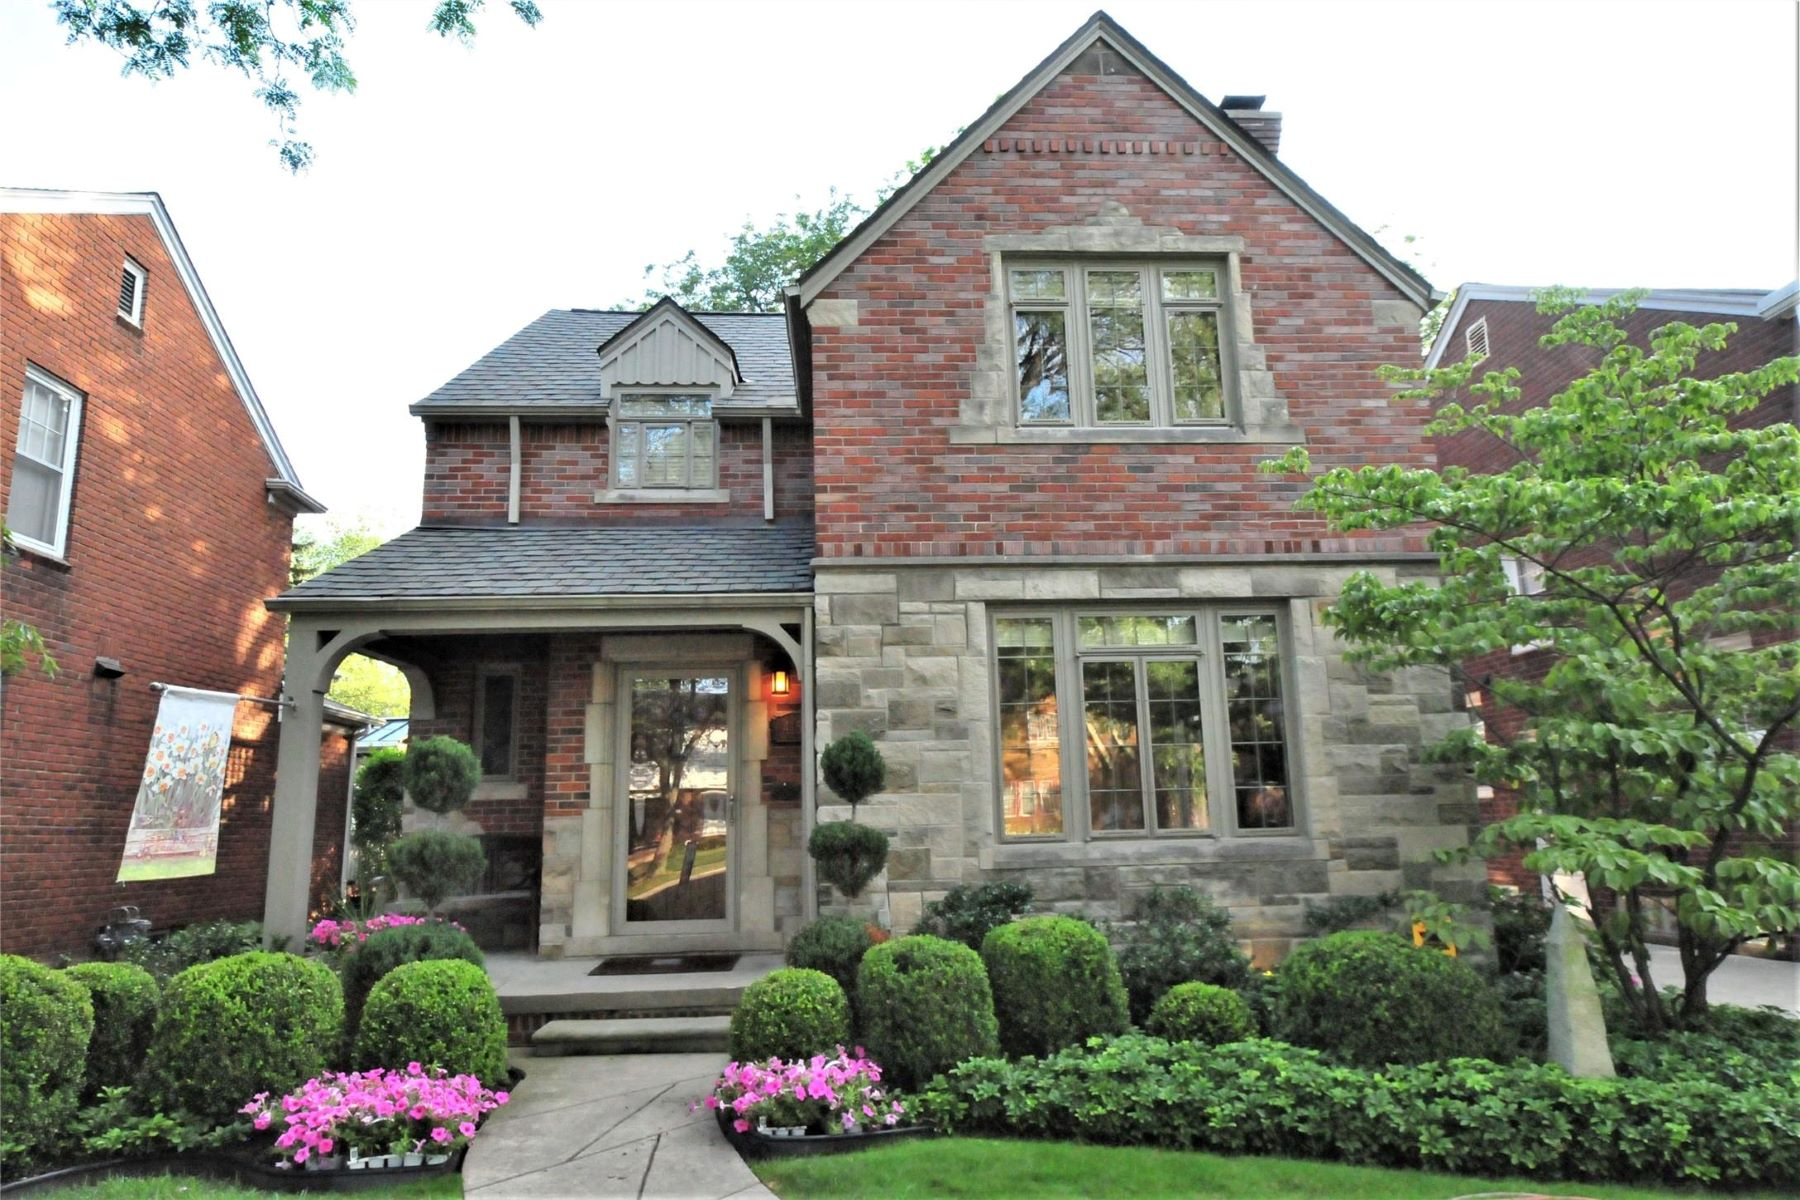 Single Family Homes for Sale at Grosse Pointe Farms 415 McKinley Grosse Pointe Farms, Michigan 48236 United States